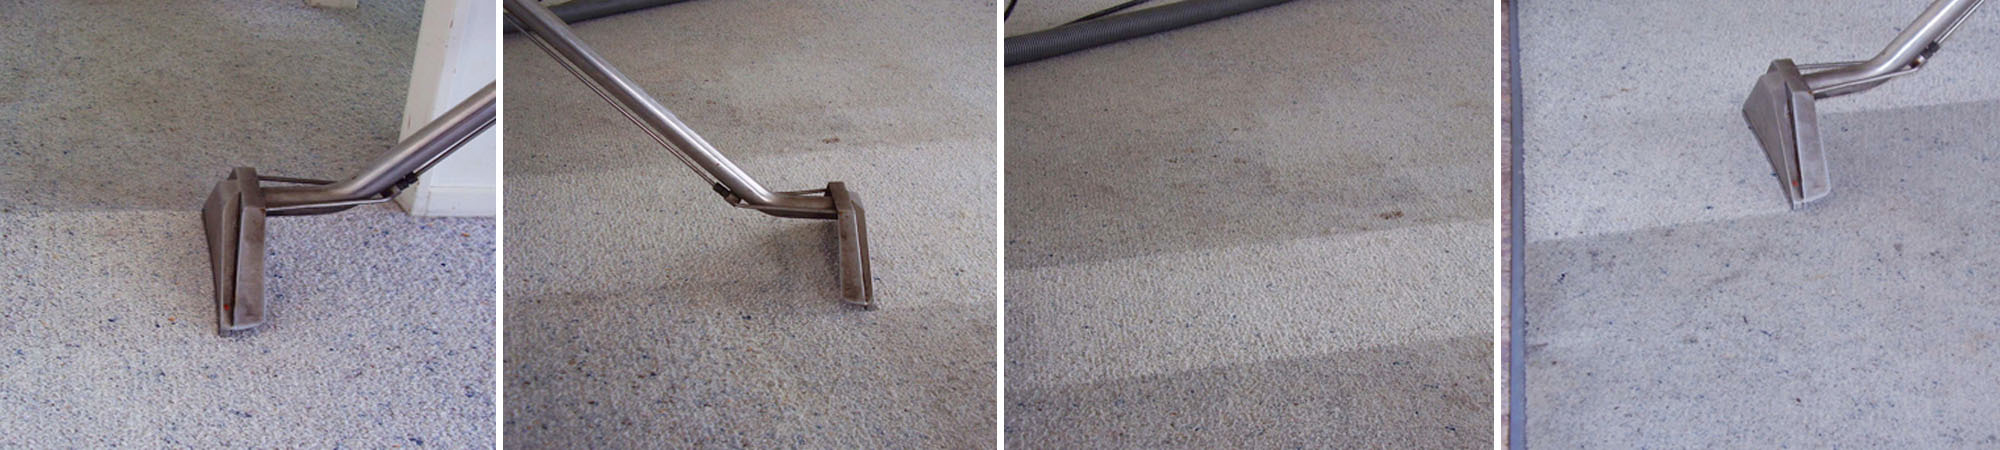 Carpet Cleaner Rotorua Cheap Carpet Cleaning Services Stains